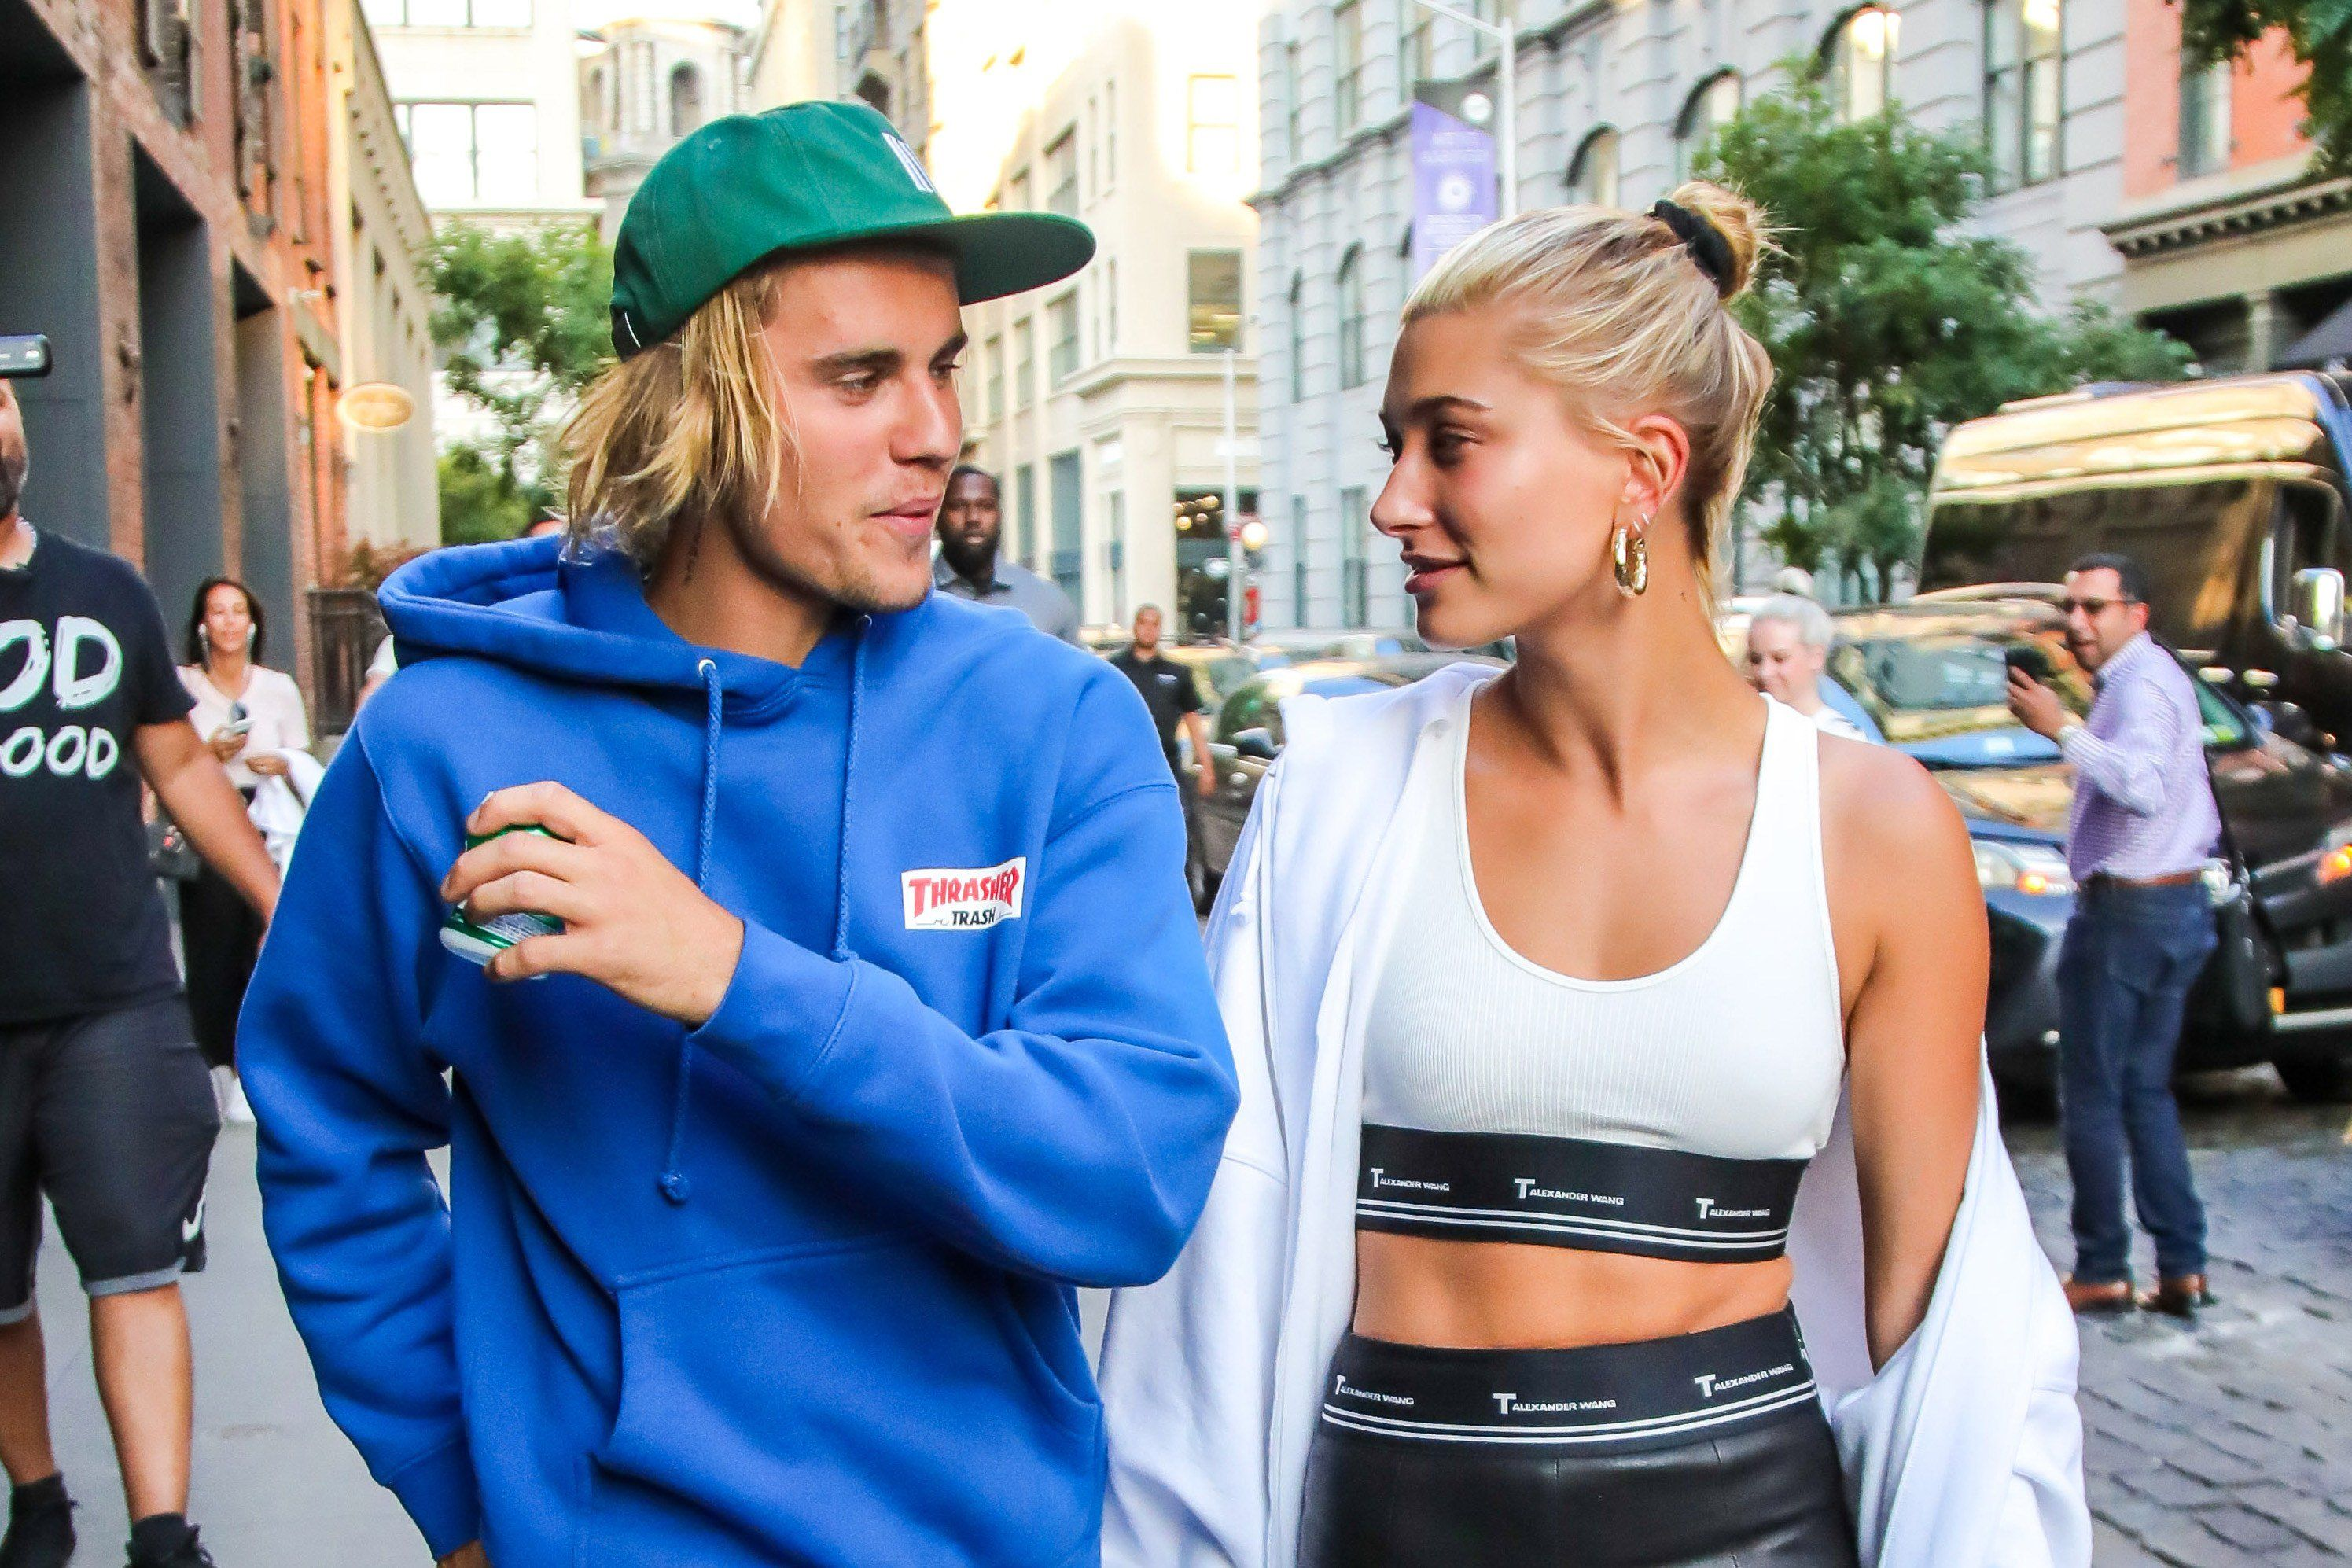 Who is justin bieber dating 2020 nba